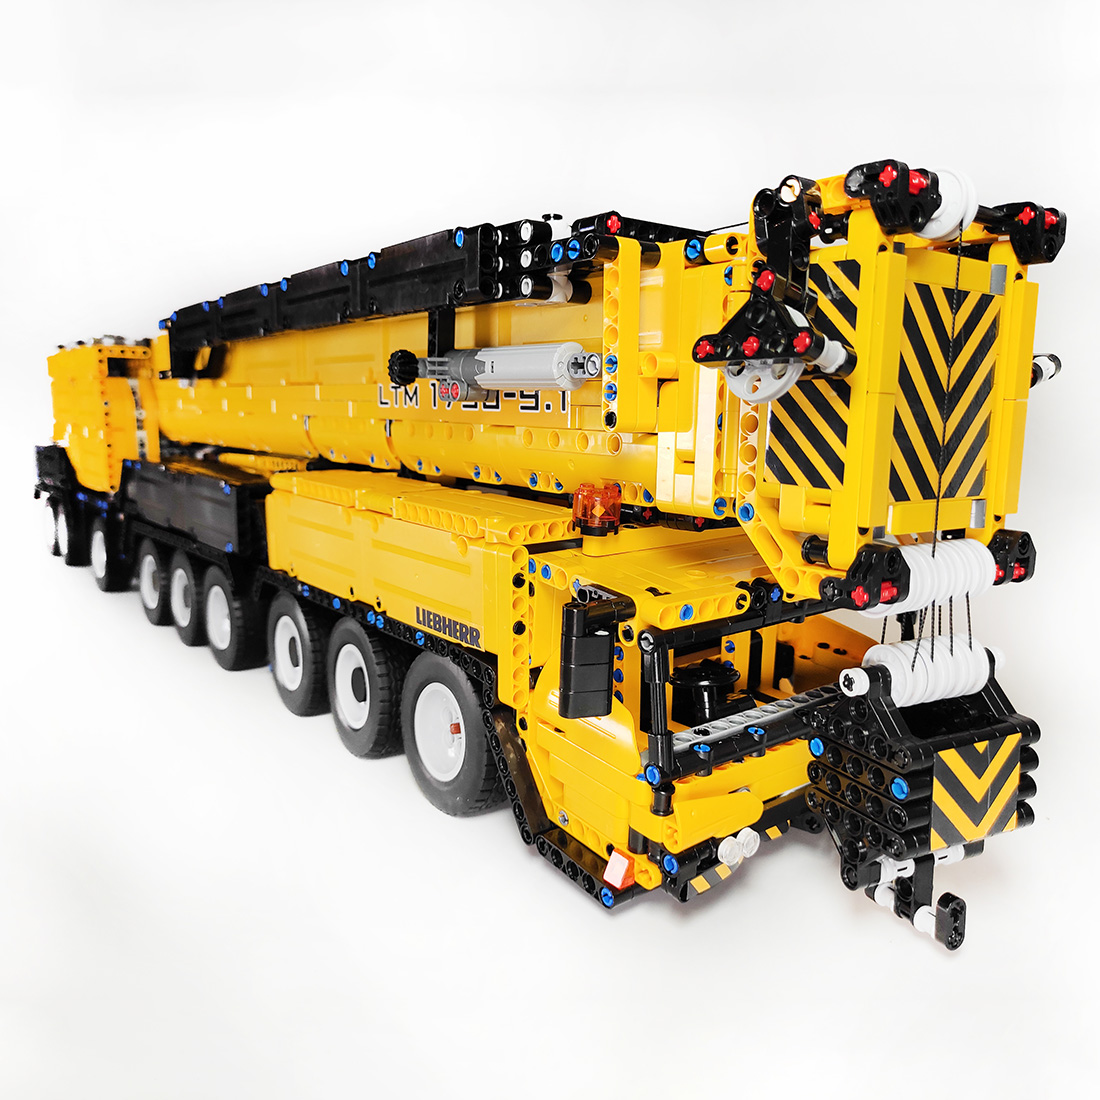 7668Pcs DIY Moc Small Particles 1:20 2.4G RC Mobile All-terrain Crane LTM1750-9.1 Building Blocks Construction Vehicle Kit